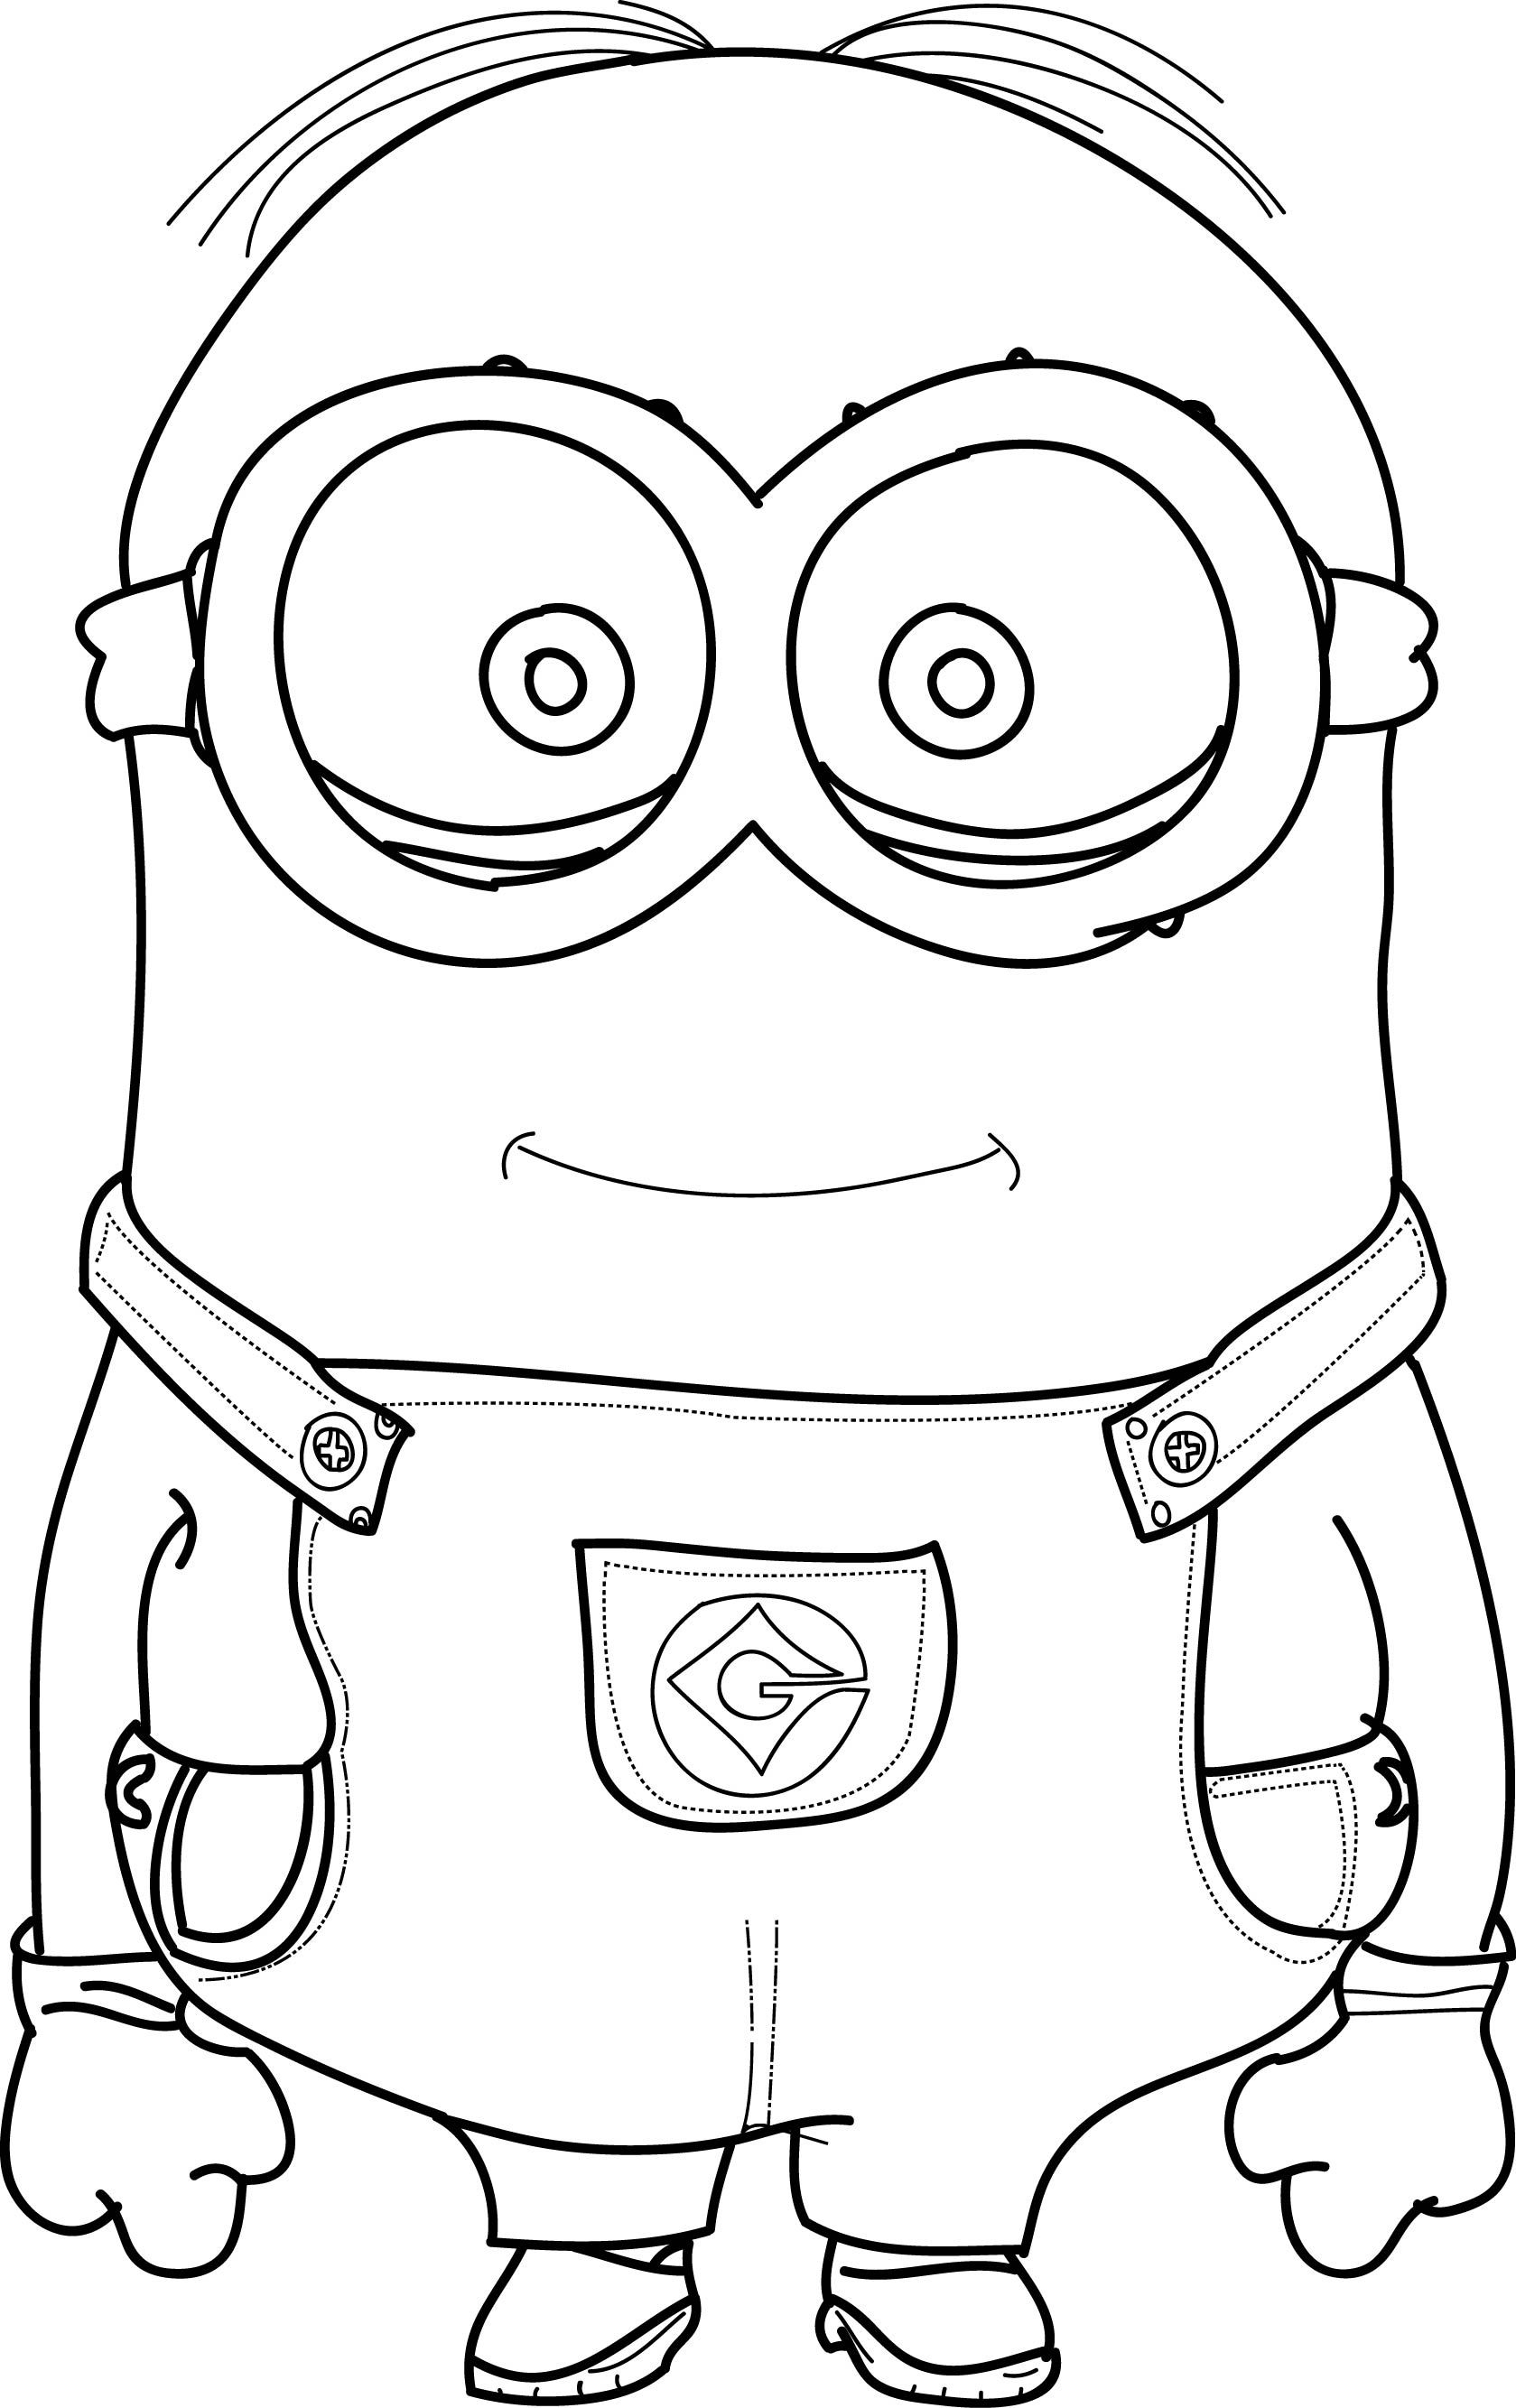 Cool minions coloring pages wecoloringpage pinterest Coloring book